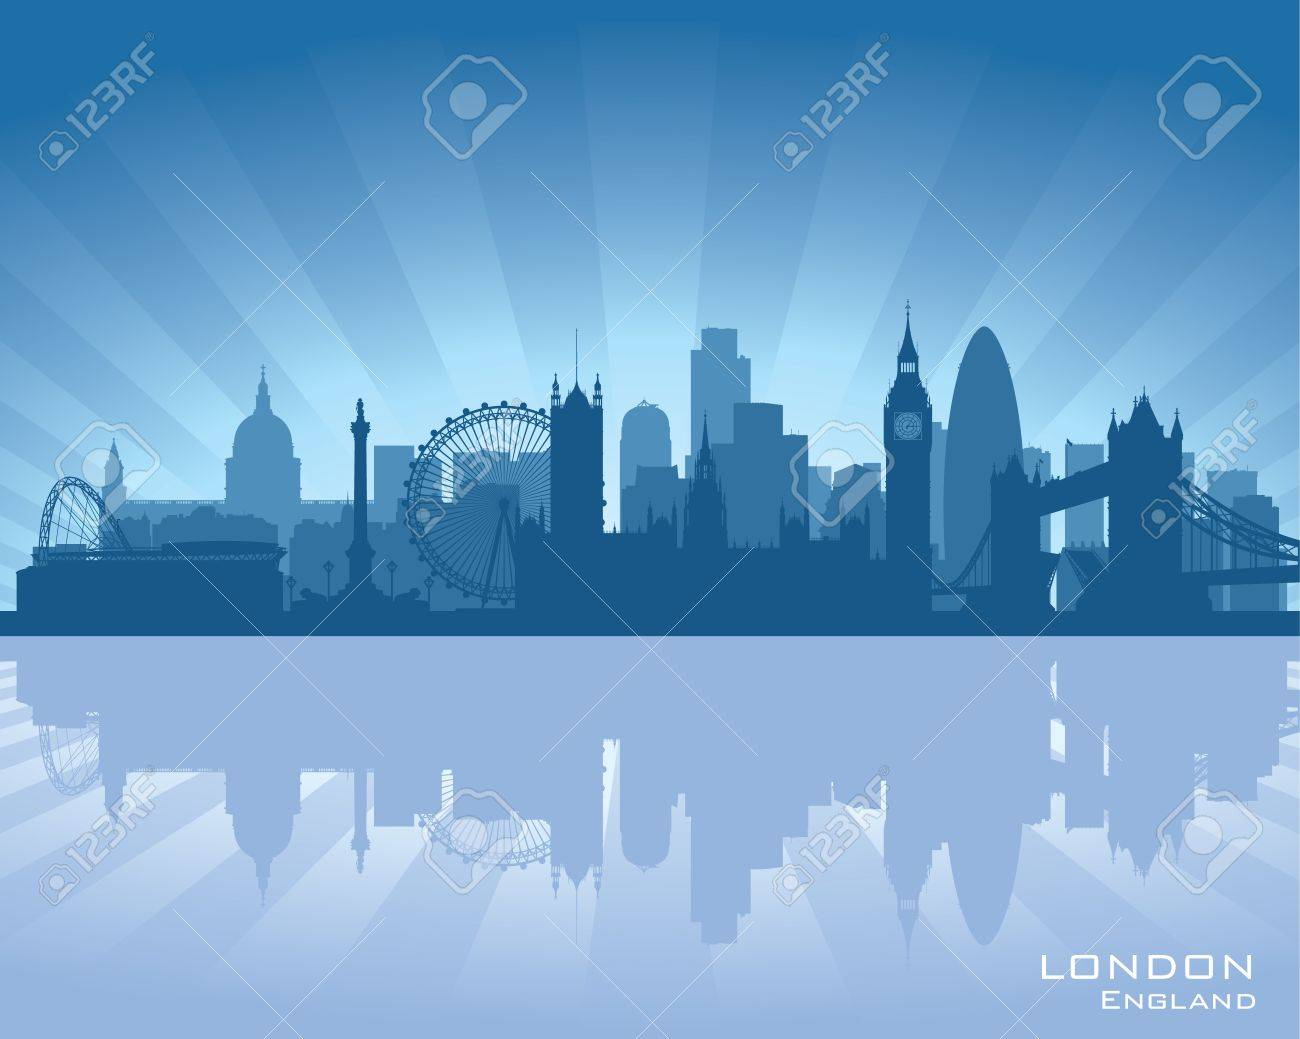 London, England skyline with reflection in water - 16708358